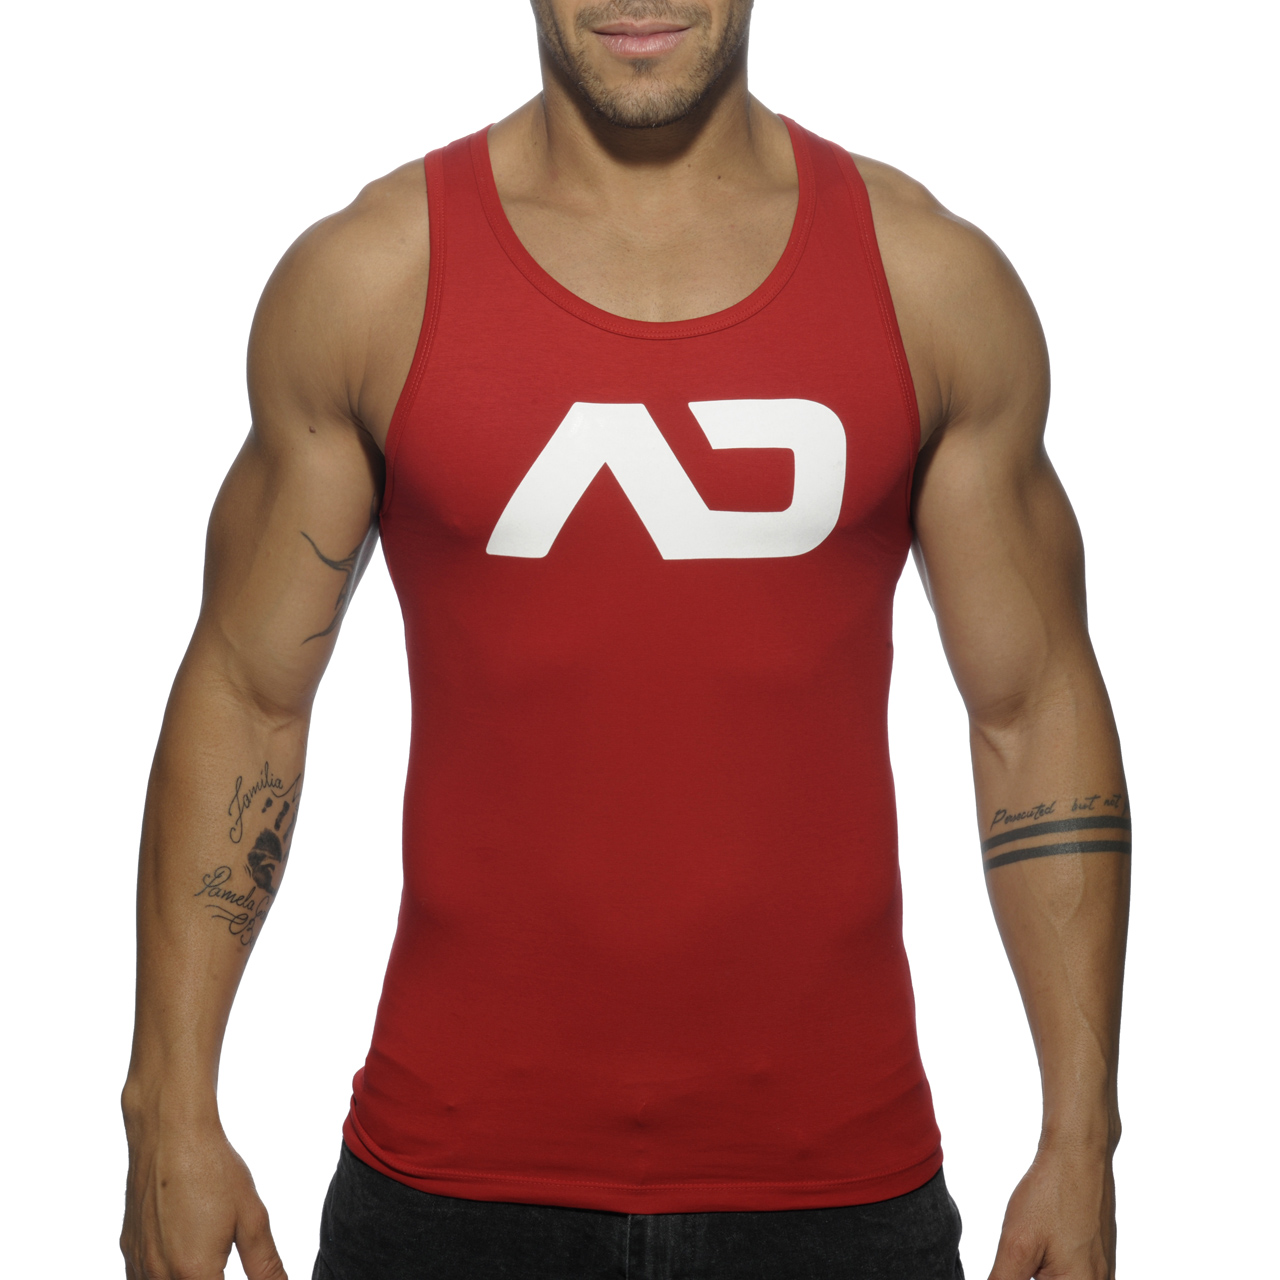 BASIC AD TANK TOP RED 06